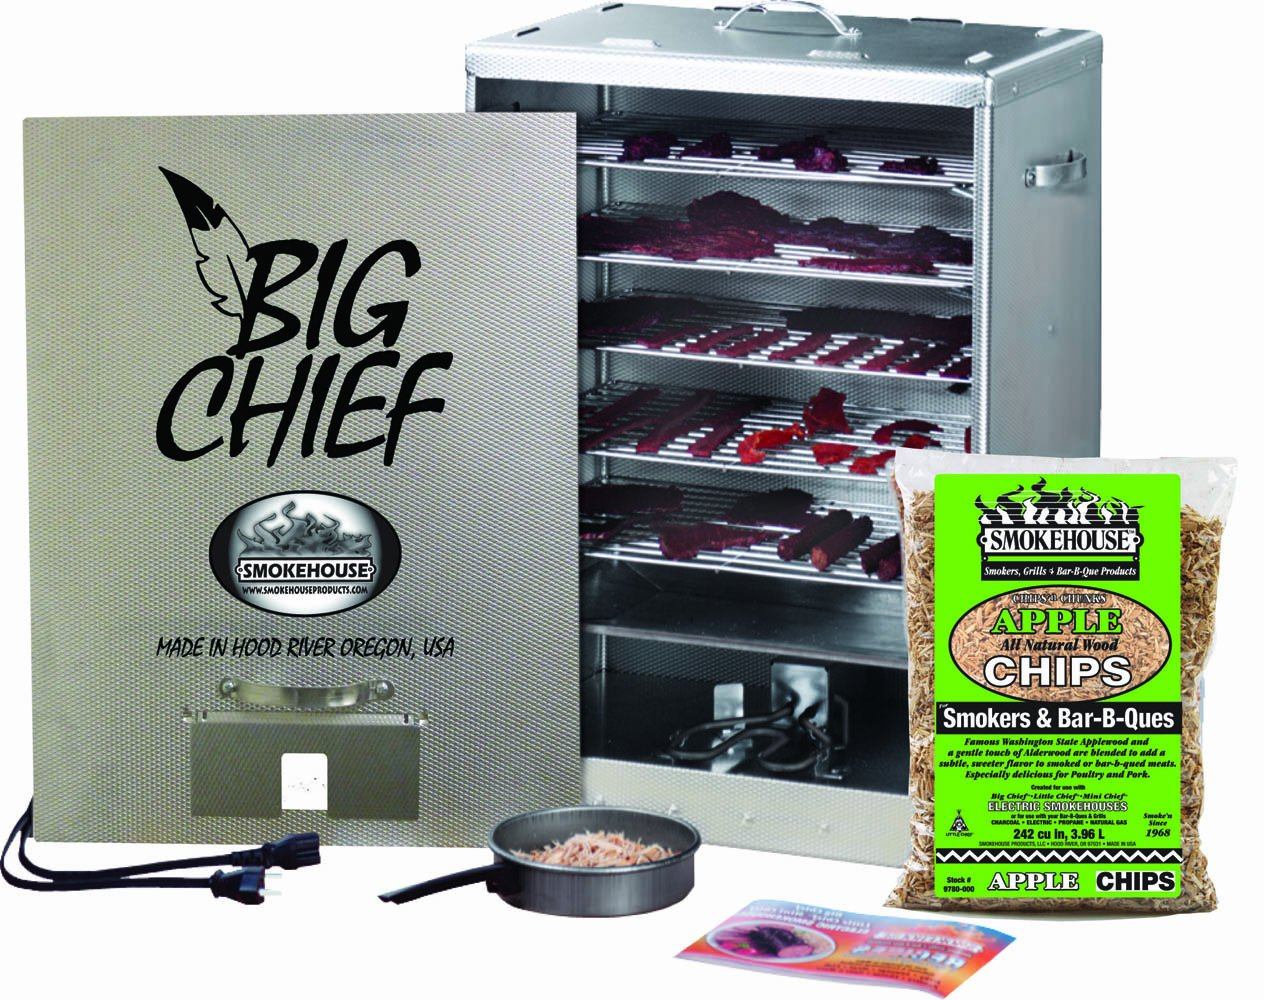 Big Chief Front Load Smoker Review